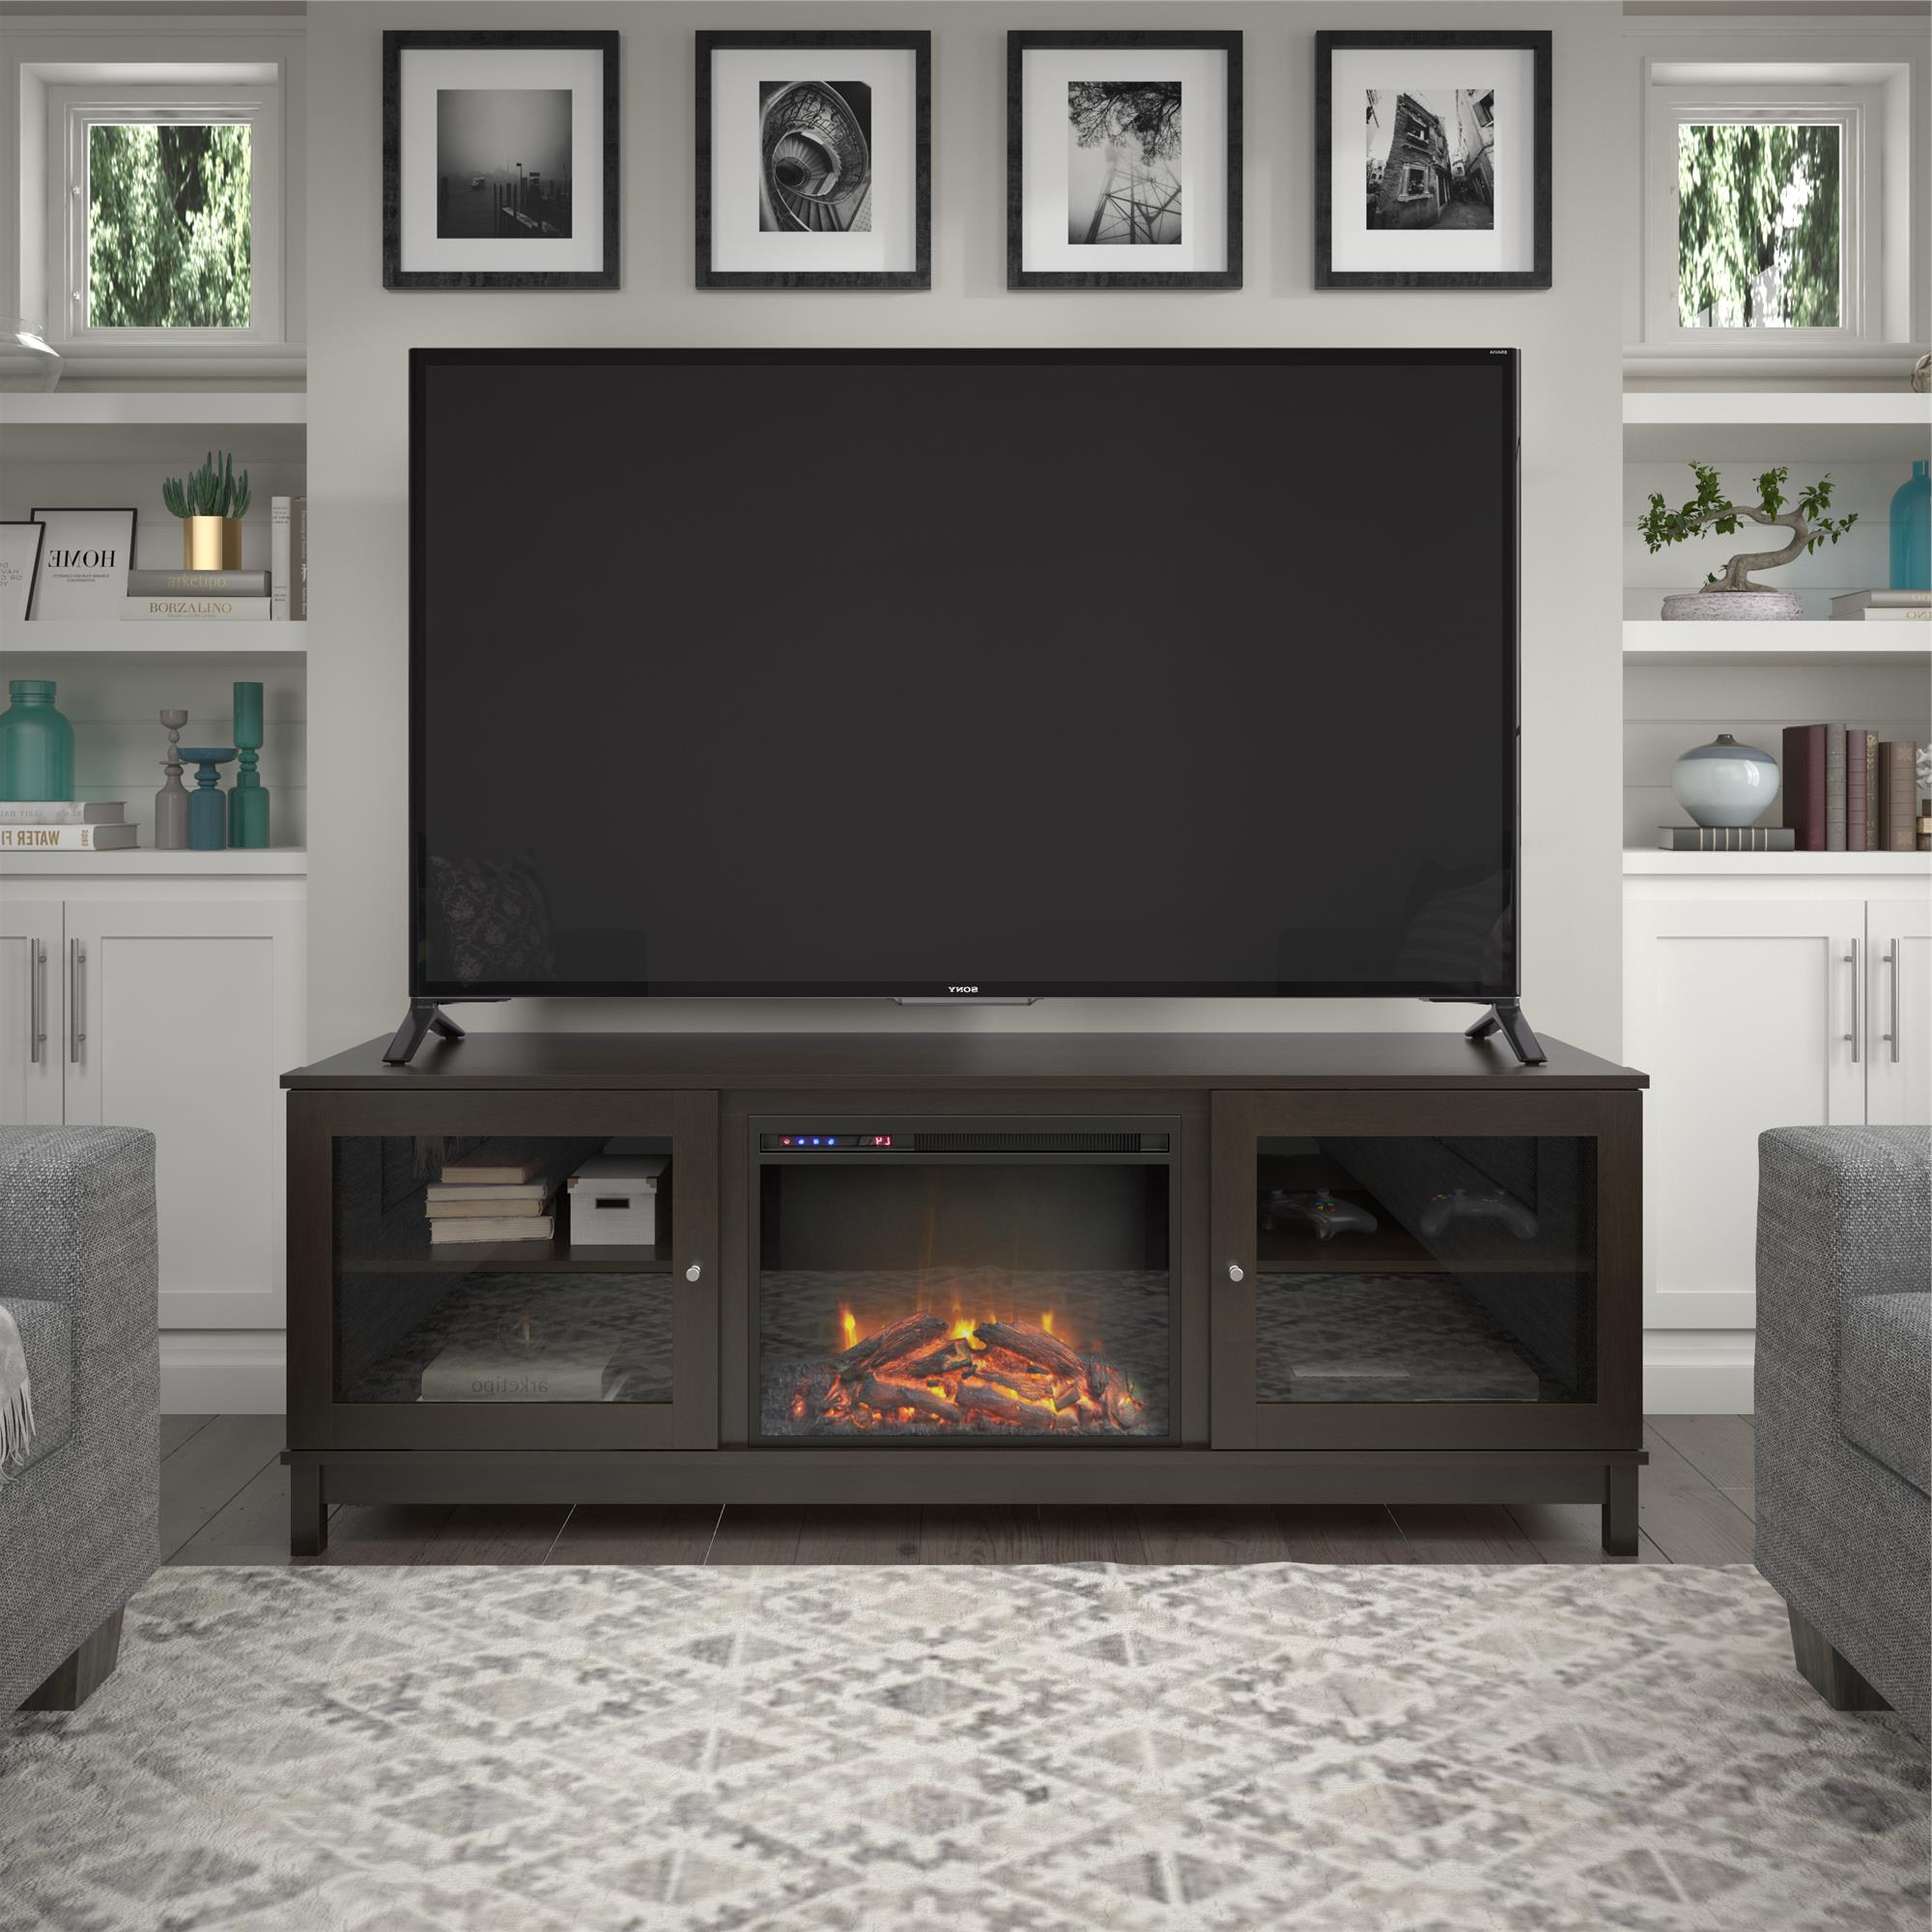 """Ameriwood Home Swanson Fireplace Tv Stand For Tvs Up To 70 Pertaining To Broward Tv Stands For Tvs Up To 70"""" (View 7 of 20)"""